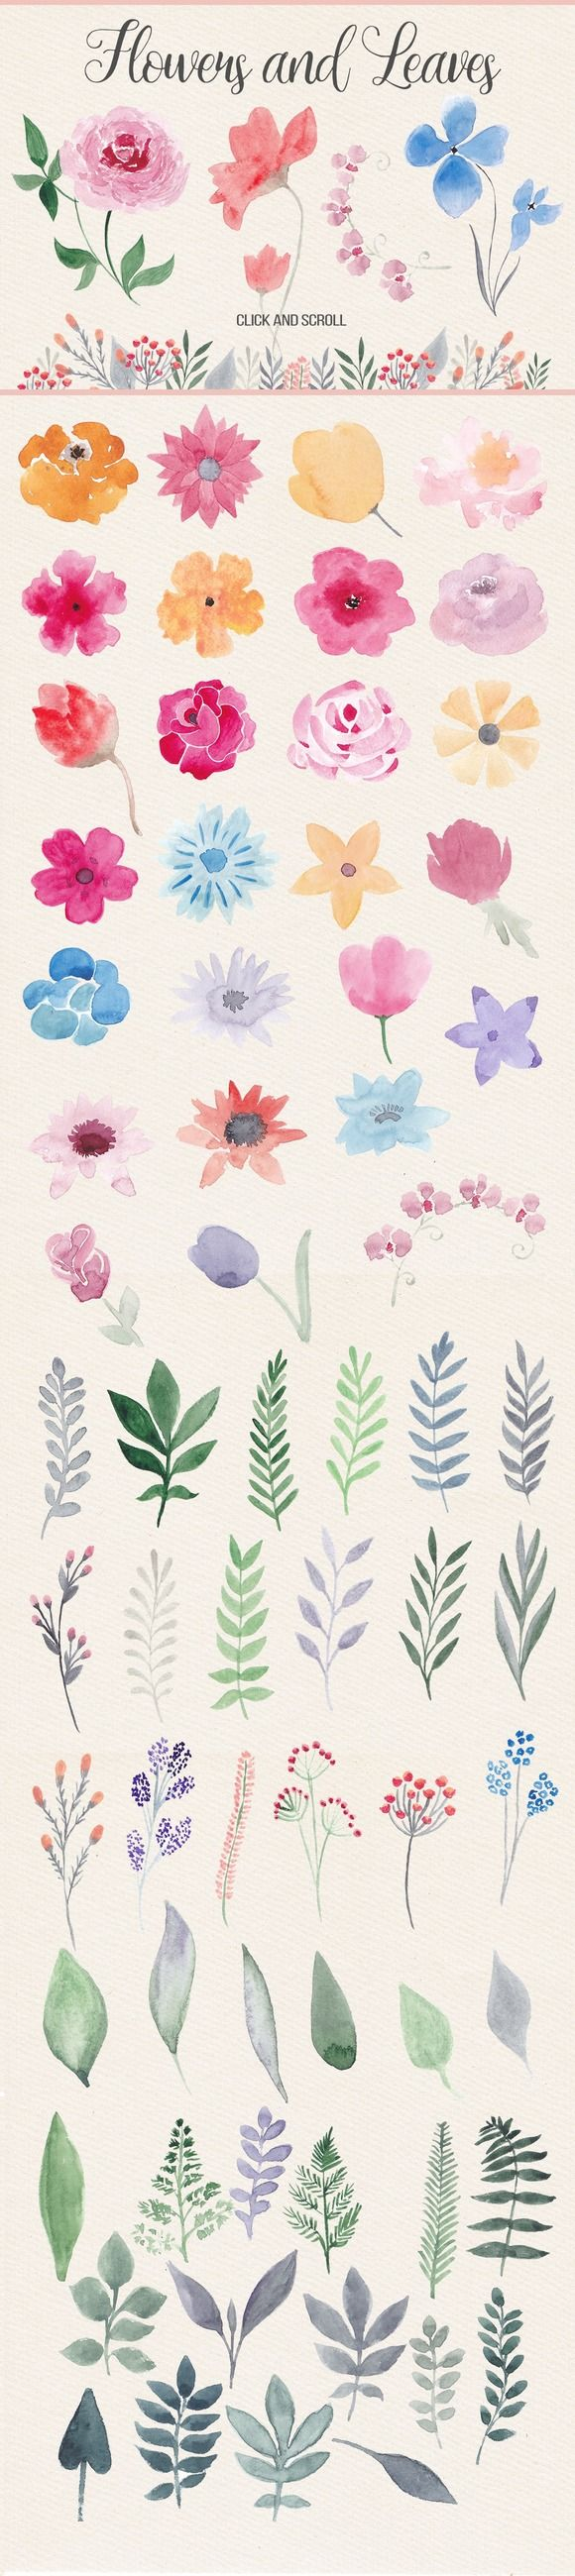 This pack contains more than 40 watercolor flowers, about 40 floral elements (leaves, branches), 5 watercolor bouquets, 12